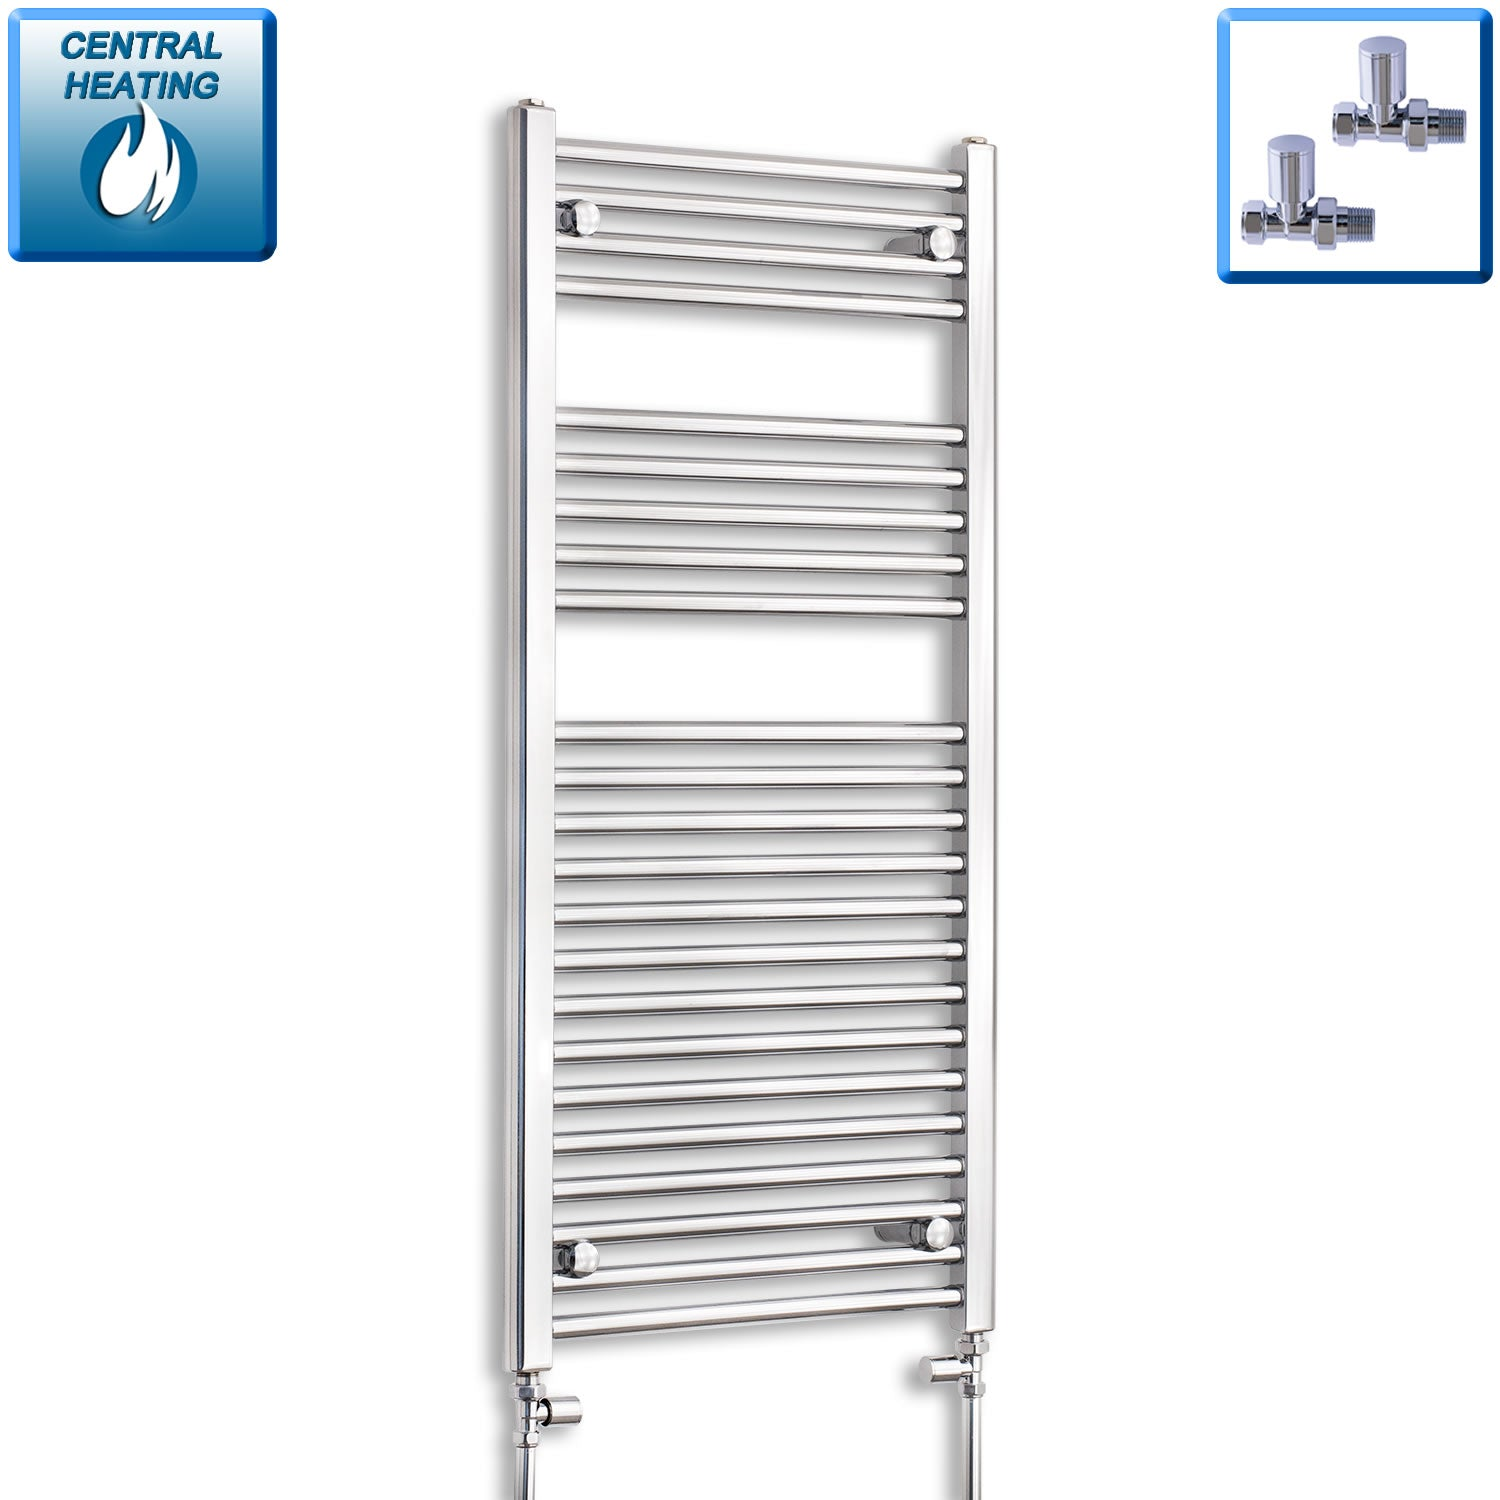 500mm Wide 1100mm High Black Towel Rail Radiator With Straight Valve